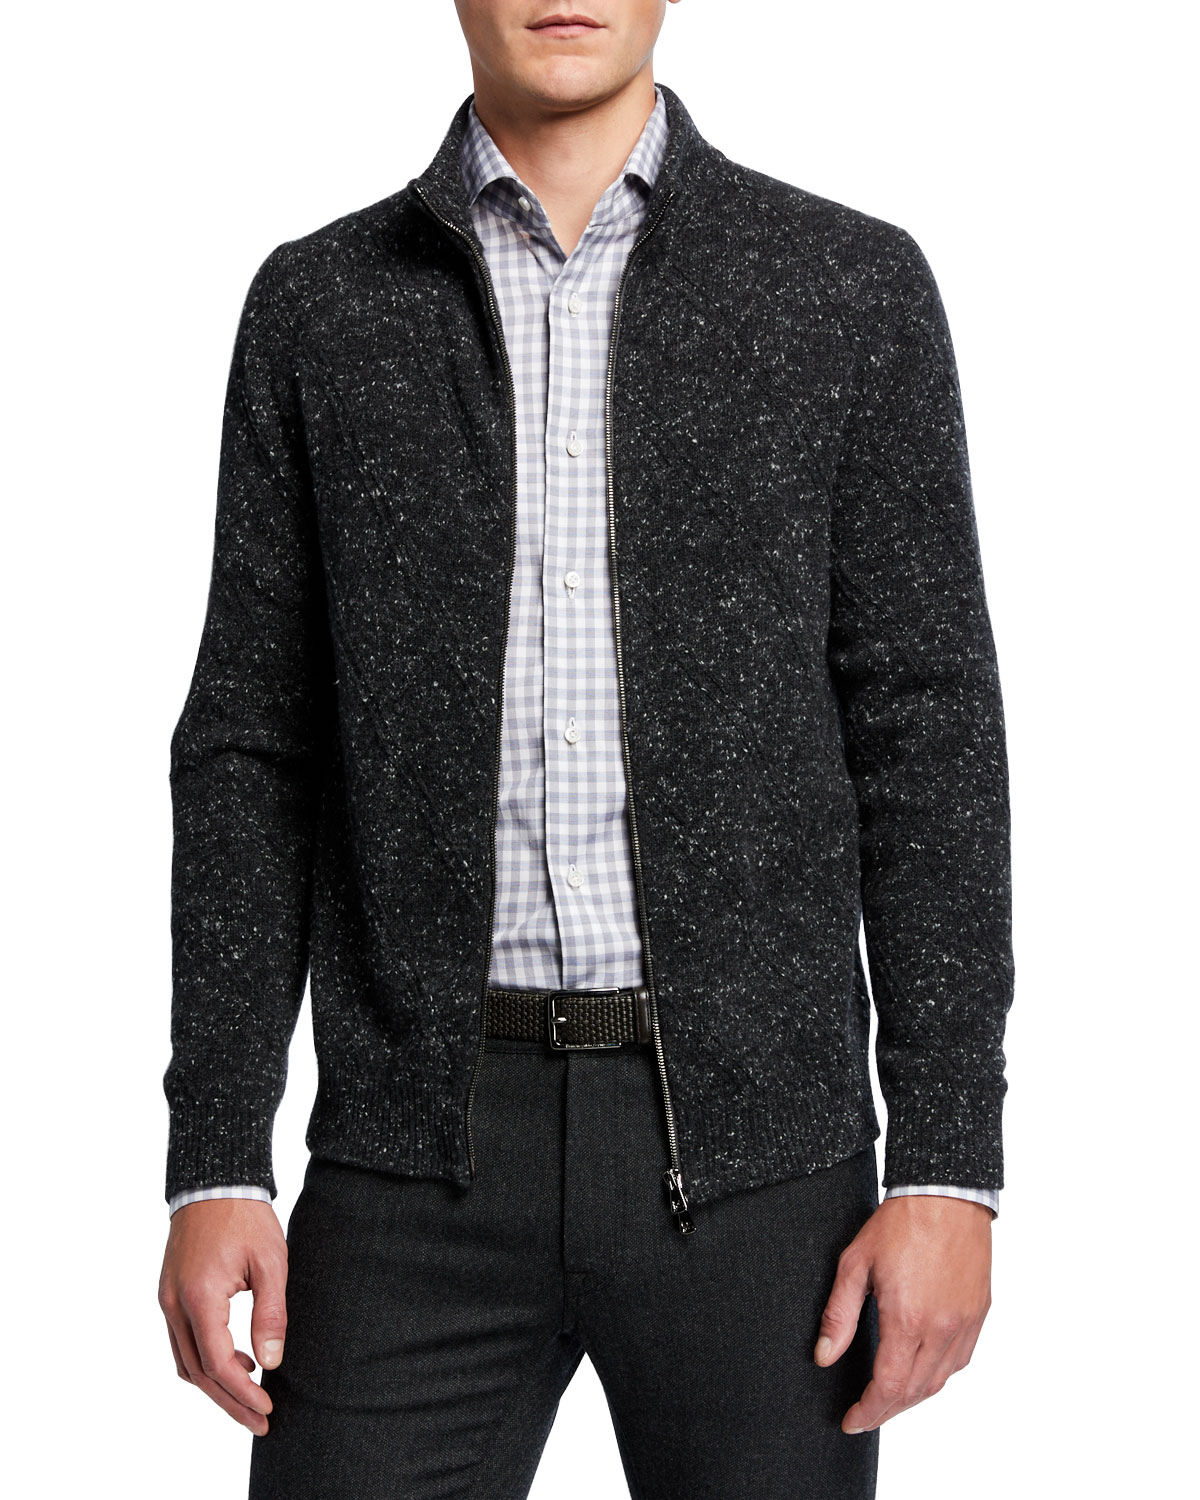 Isaia Knits MEN'S DONEGAL KNIT ZIP-FRONT SWEATER